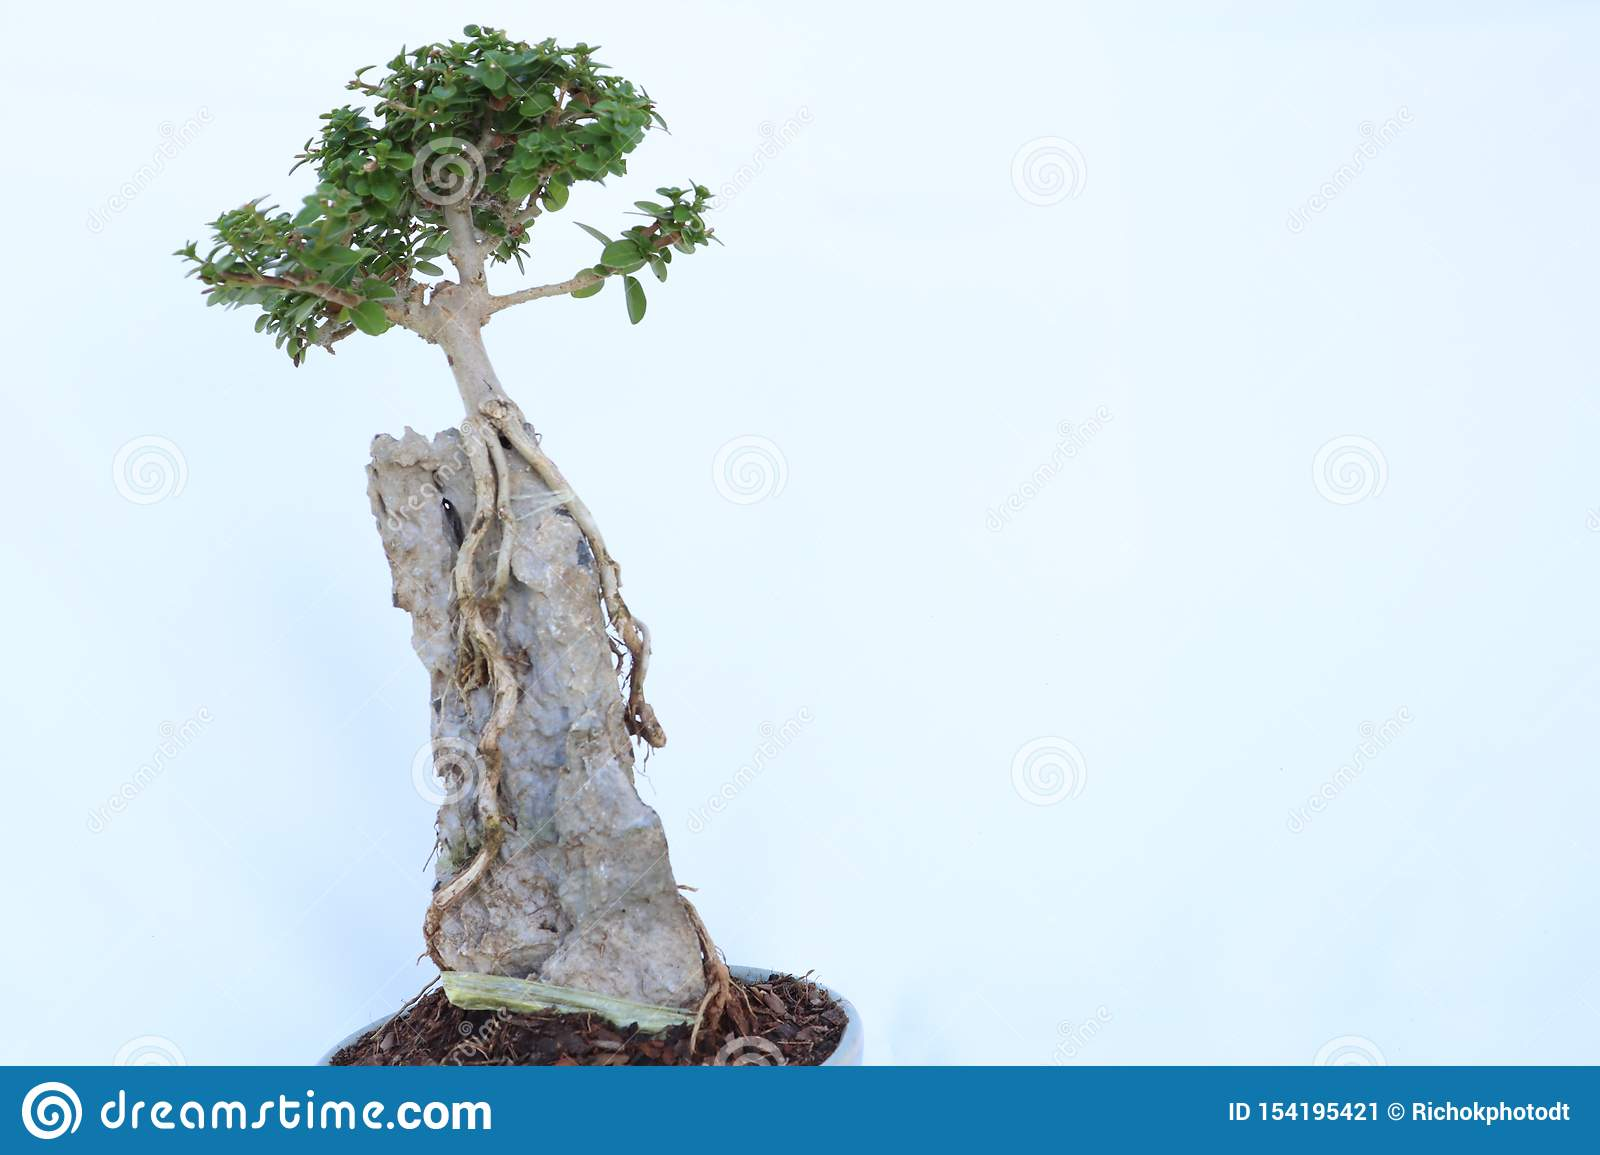 Bonsai Trees Have Long Roots On The Rocks In Small Pots Simulate Nature In The Big Forest Stock Image Image Of Asian Natural 154195421